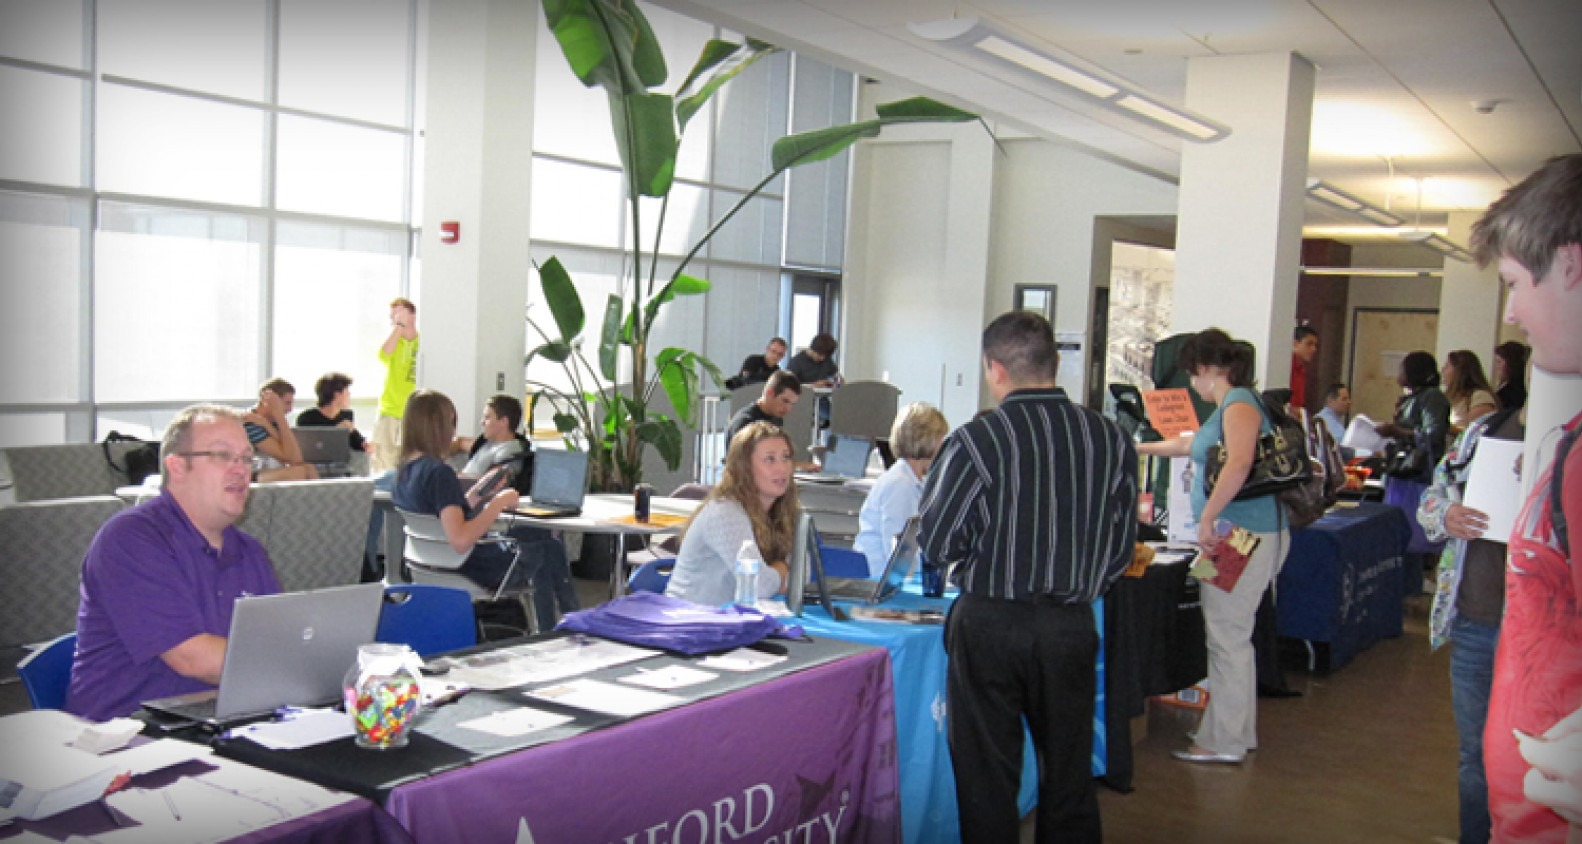 College and University booths set up at Nampa Campus Academic Buildling for Transfer Fair